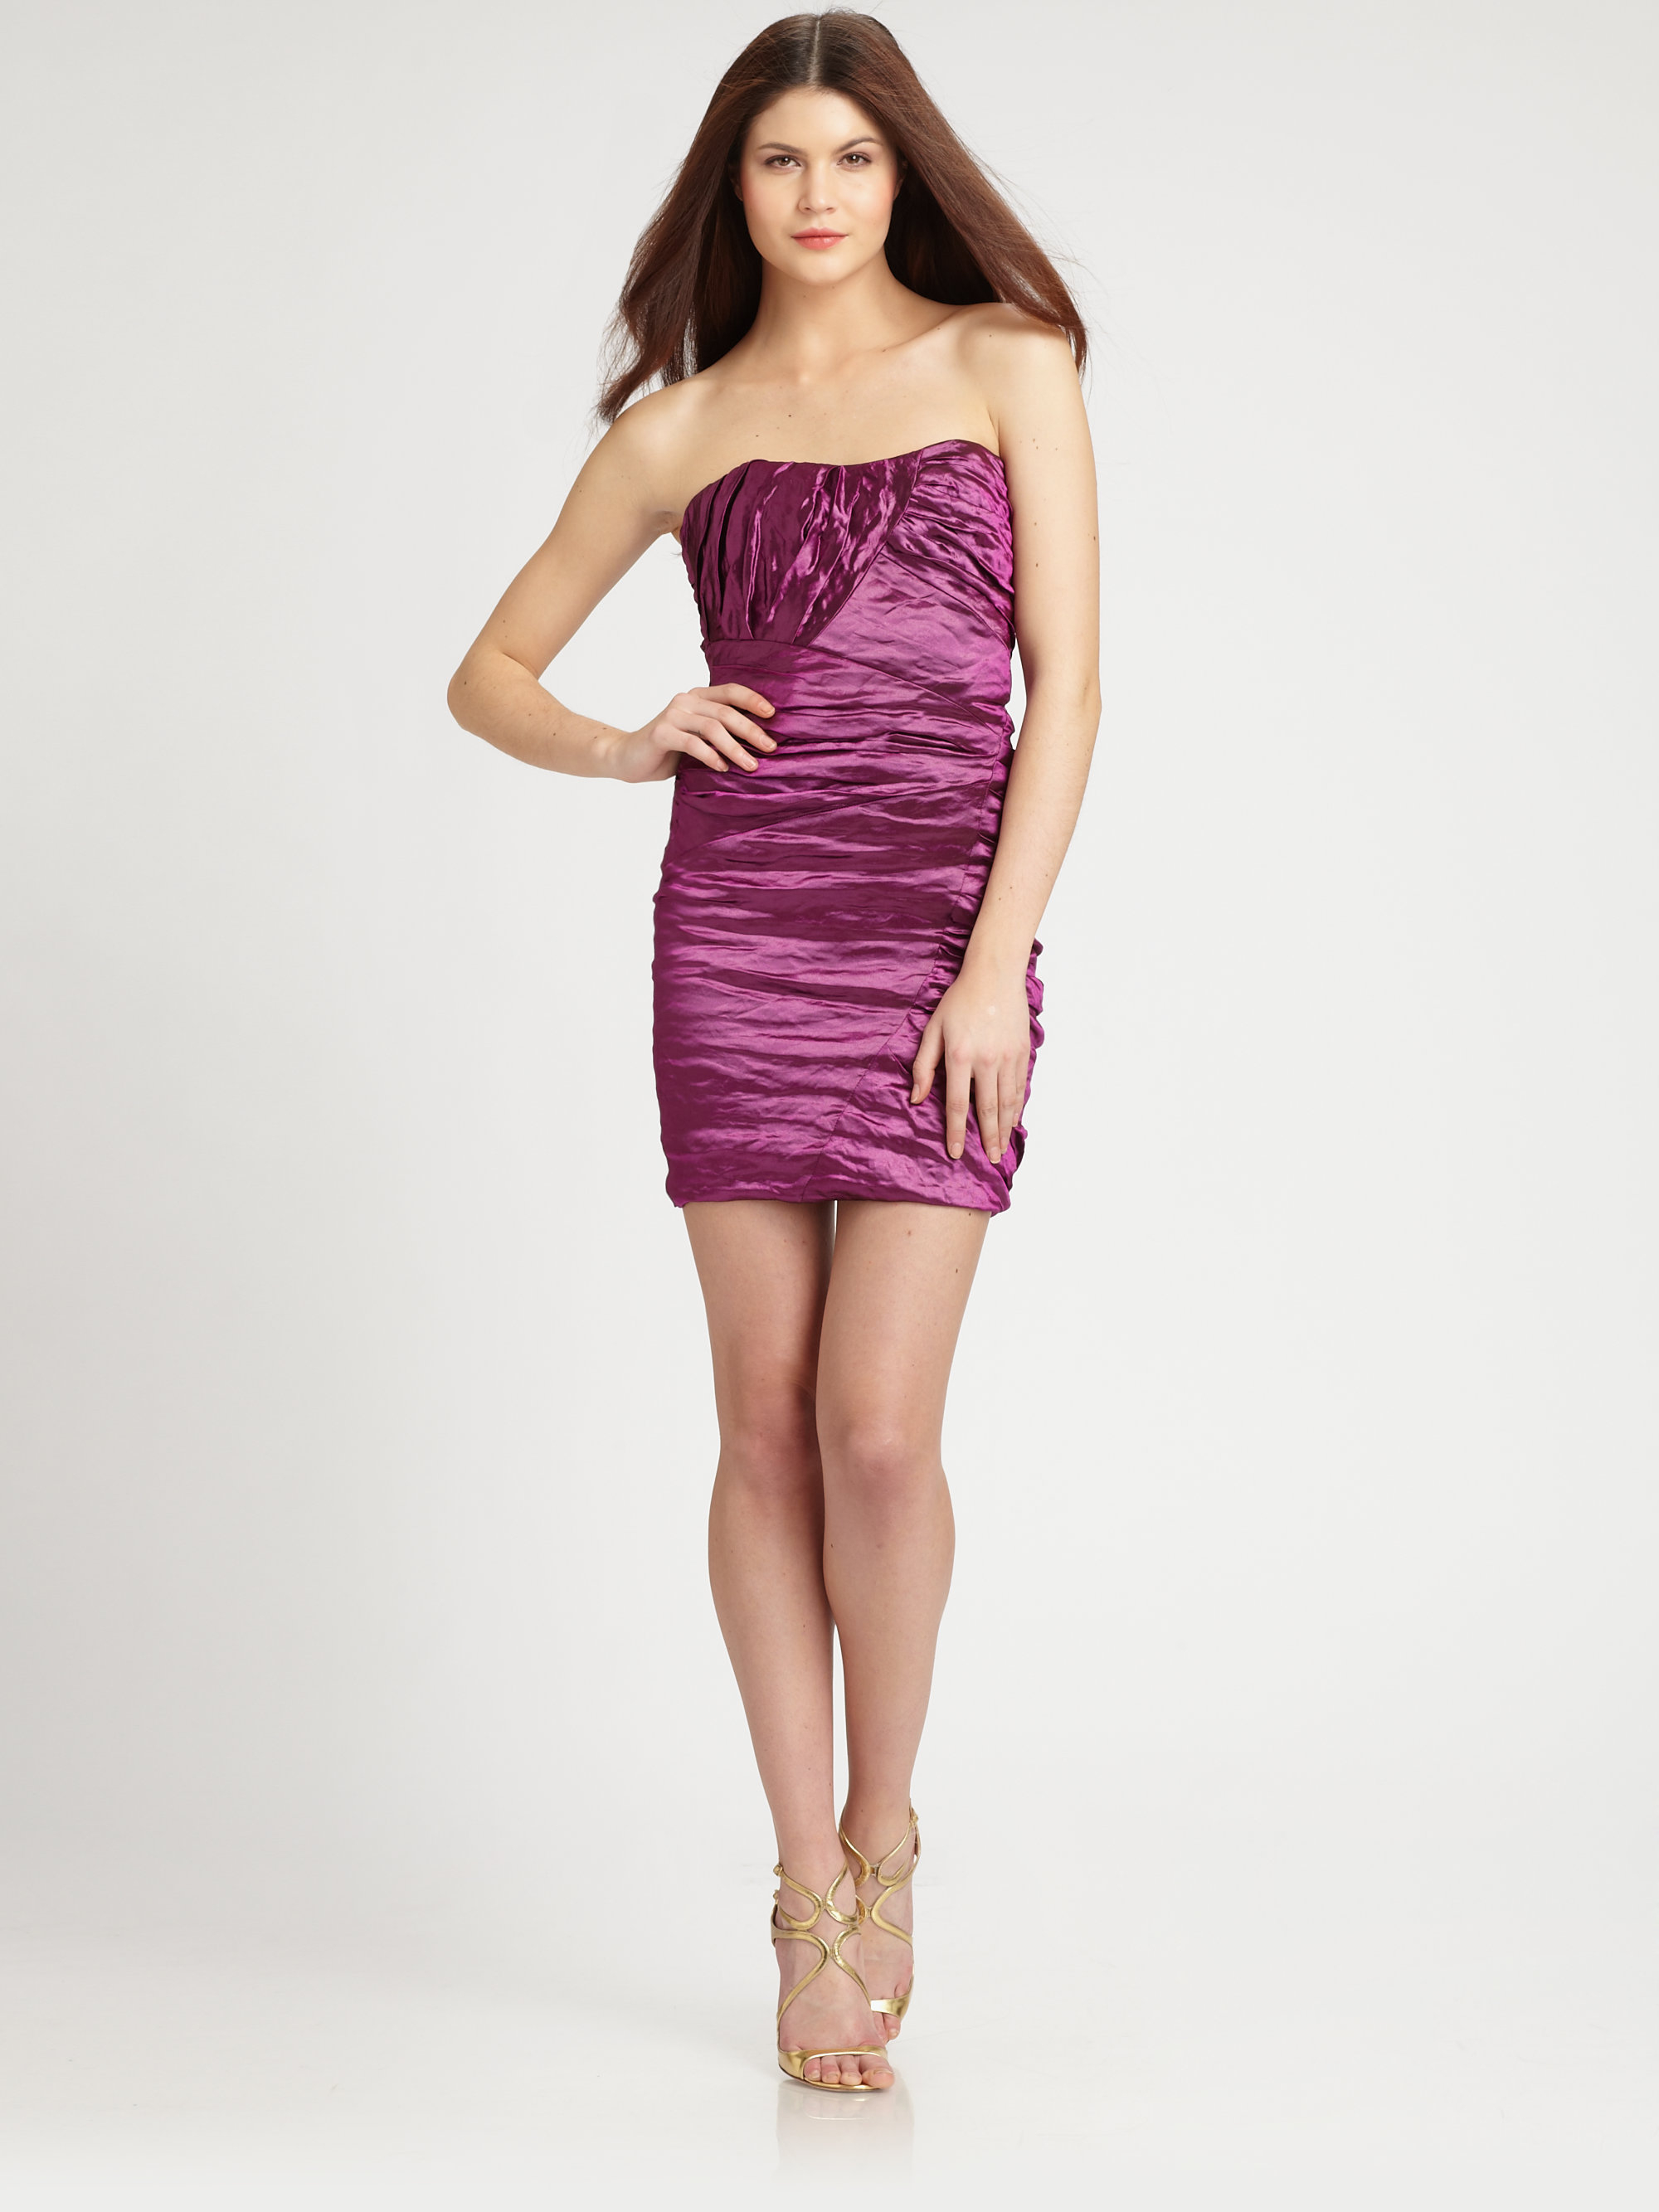 Nicole miller Strapless Mini Dress in Purple | Lyst